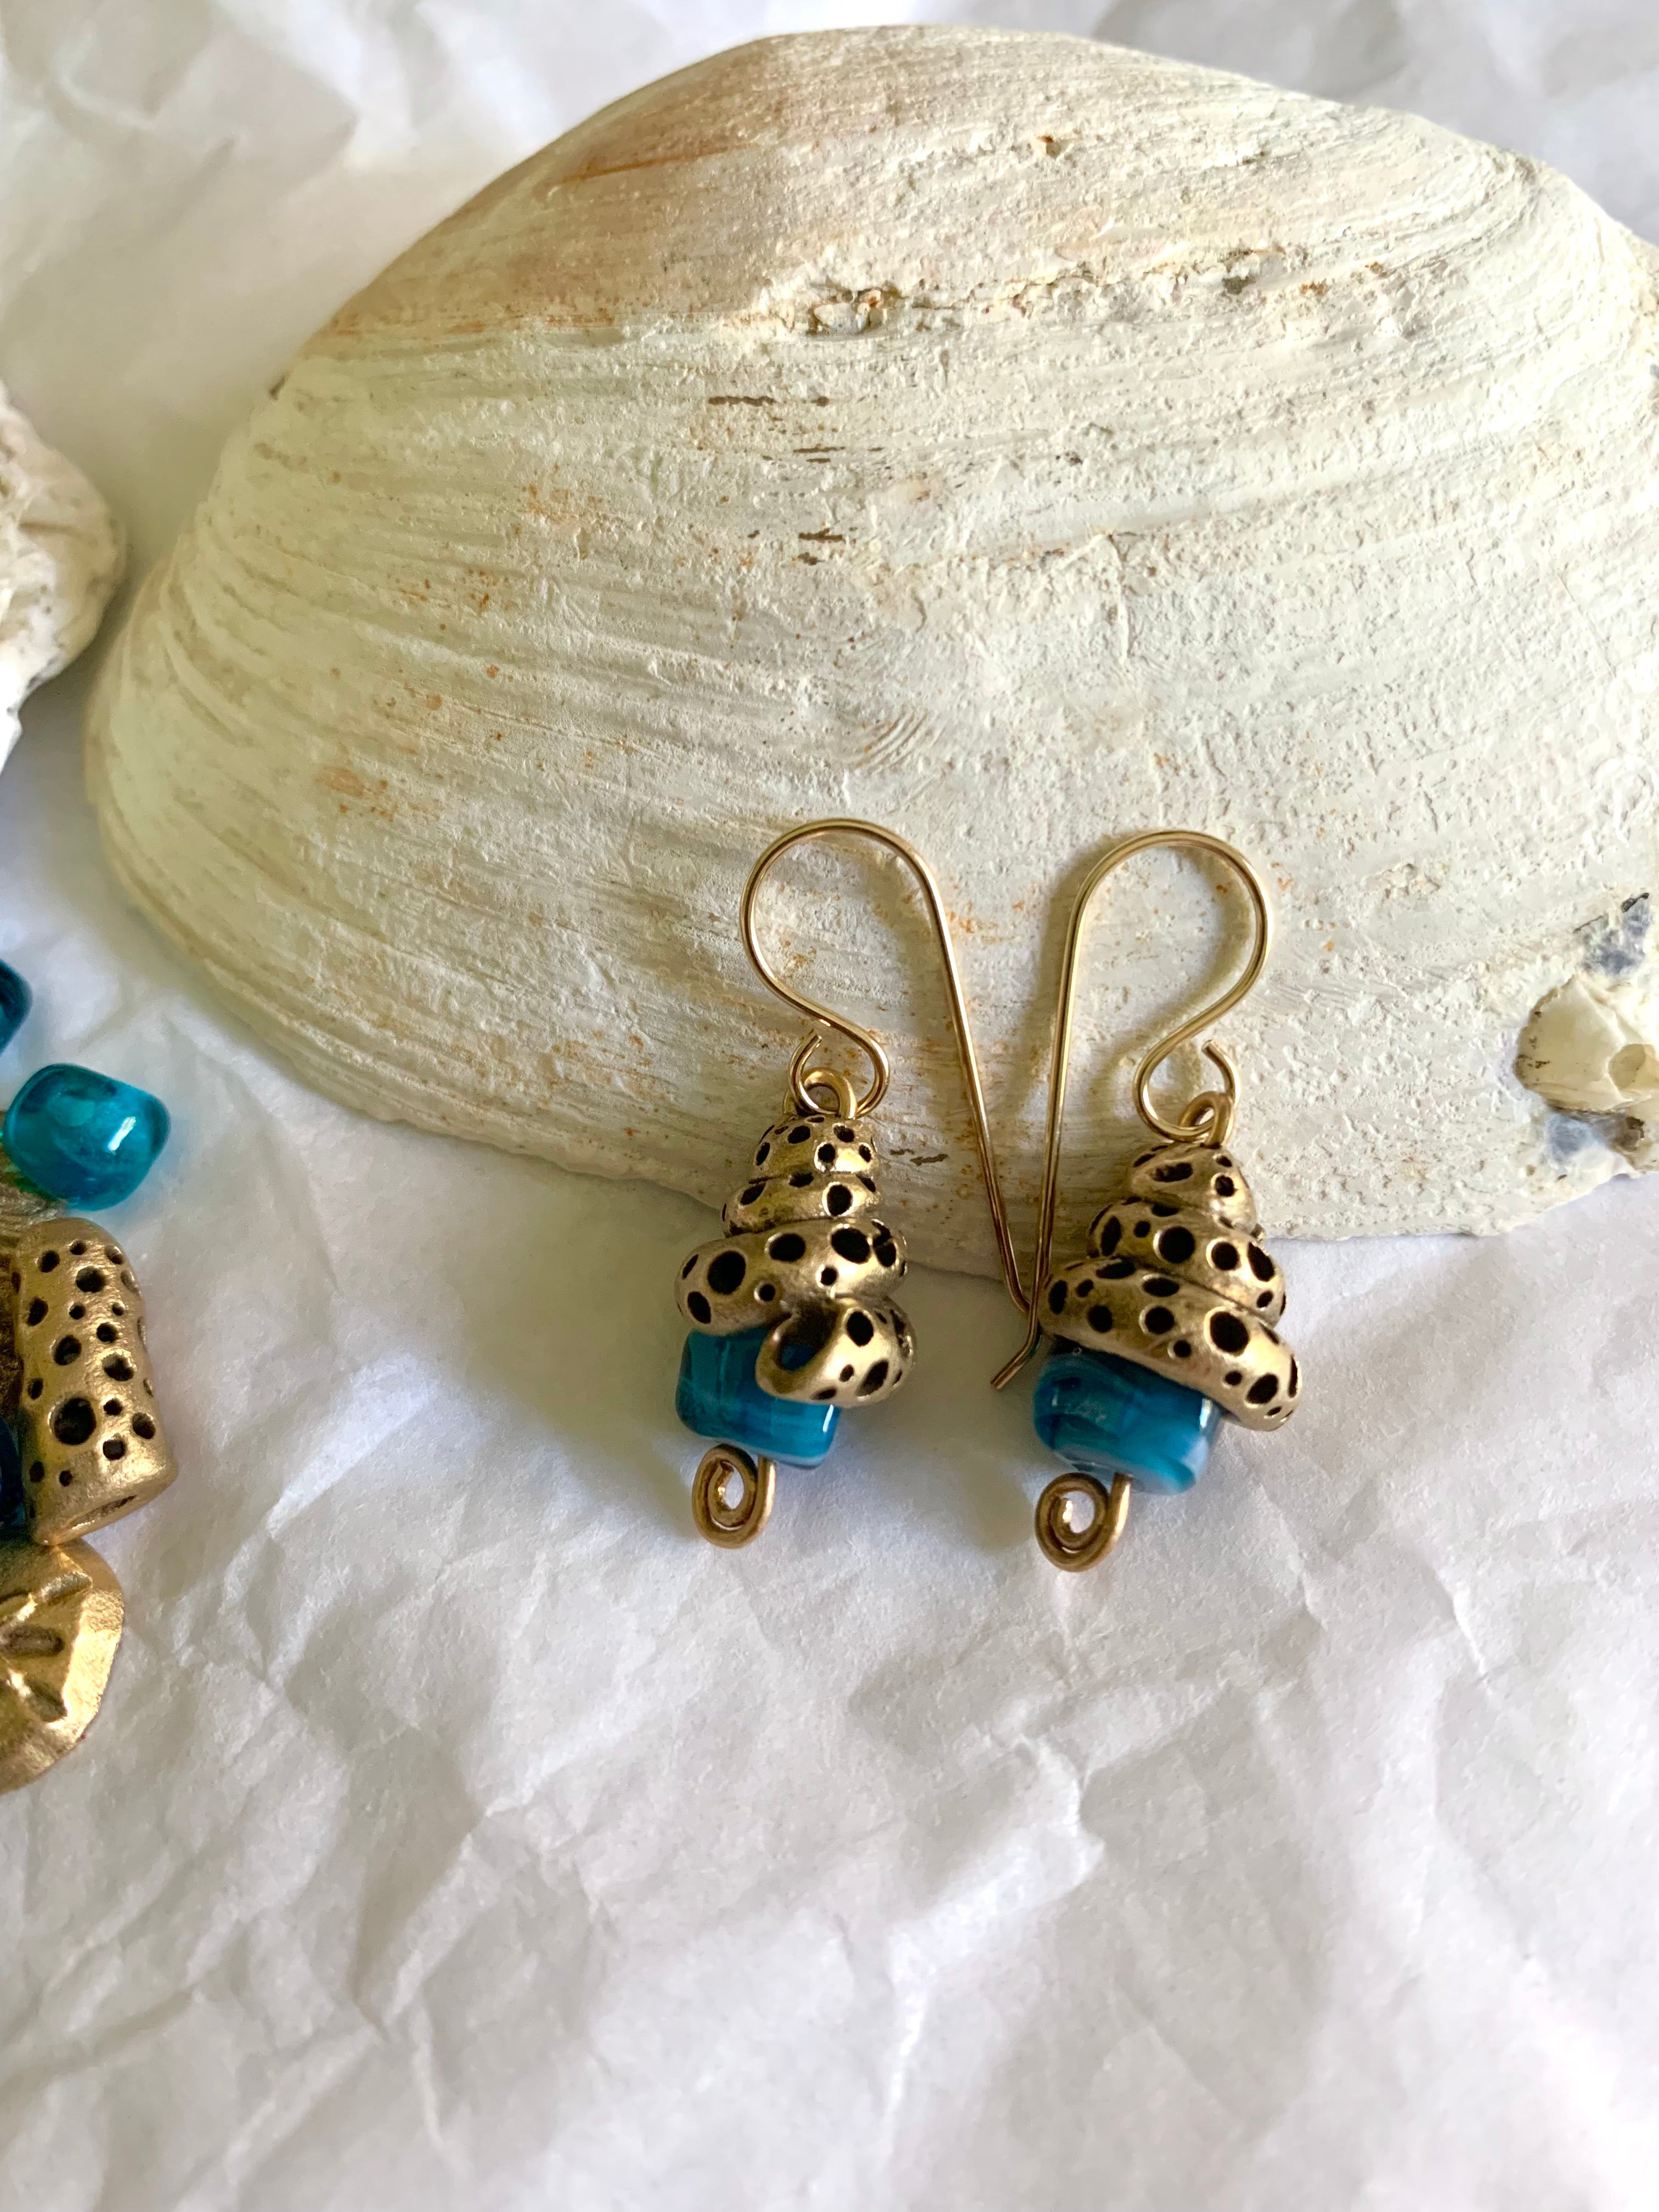 Shell inspired bronze earrings with blue artisan made glass beads